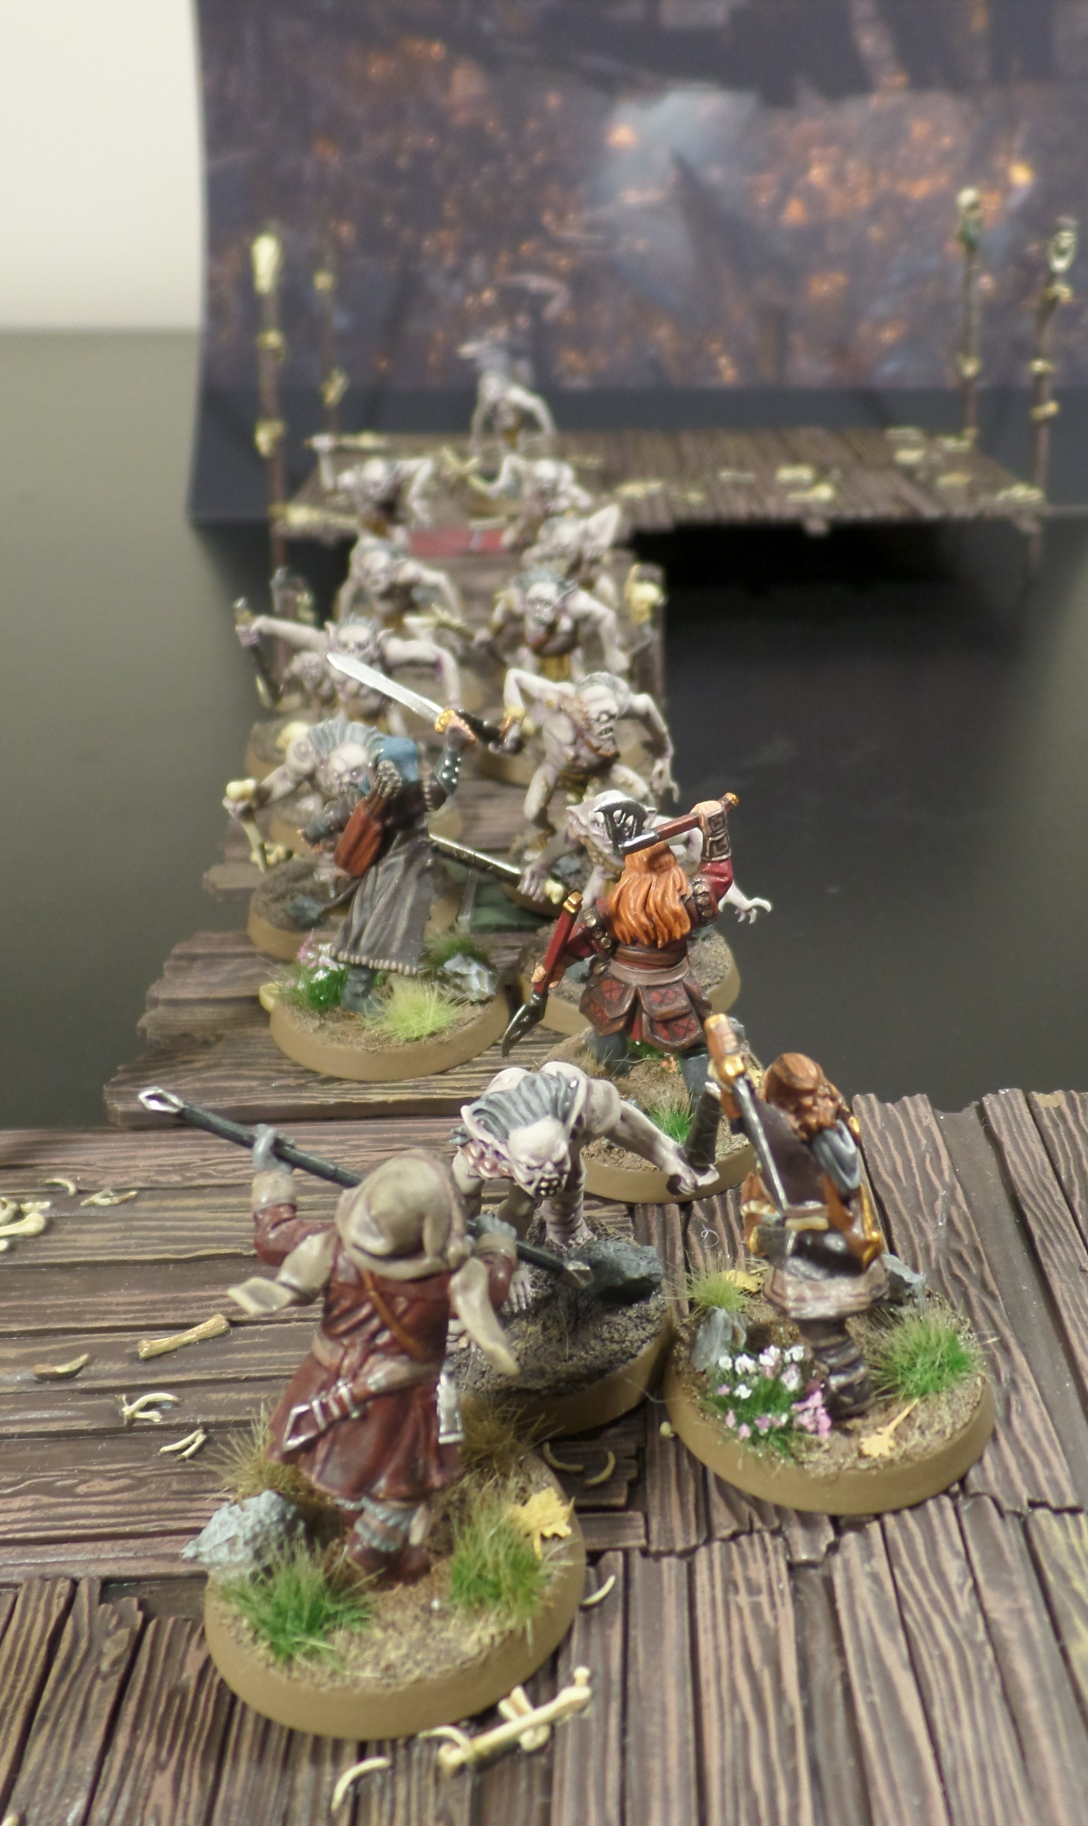 The Break Through Hobbit SBG Scenario Gloin Oin Fili Kili Escape From Goblin Town Set Games Workshop